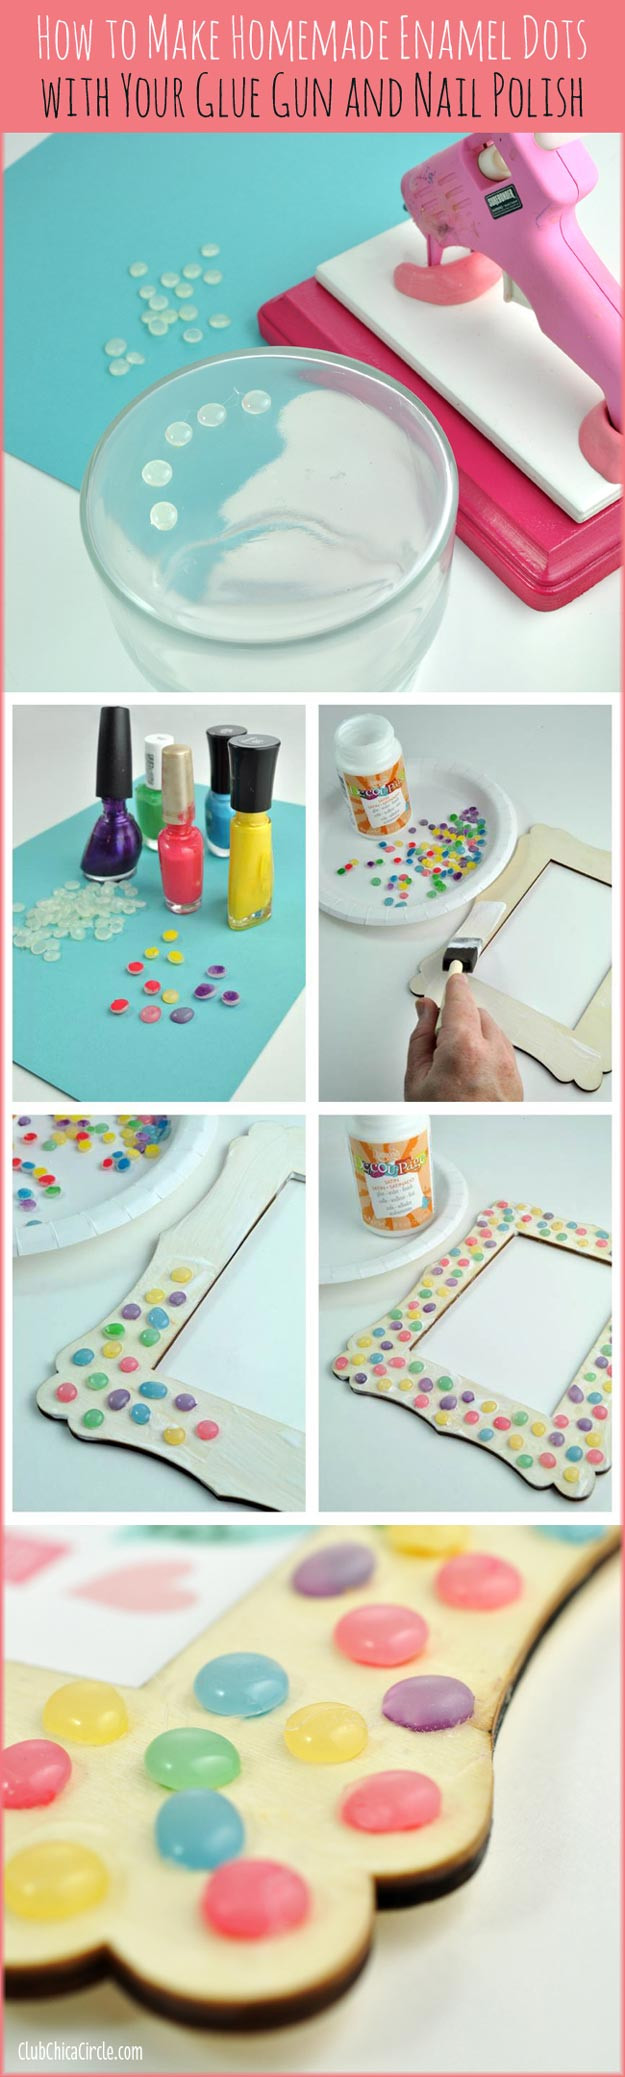 Crafts For Adults To Do At Home  31 Incredibly Cool DIY Crafts Using Nail Polish